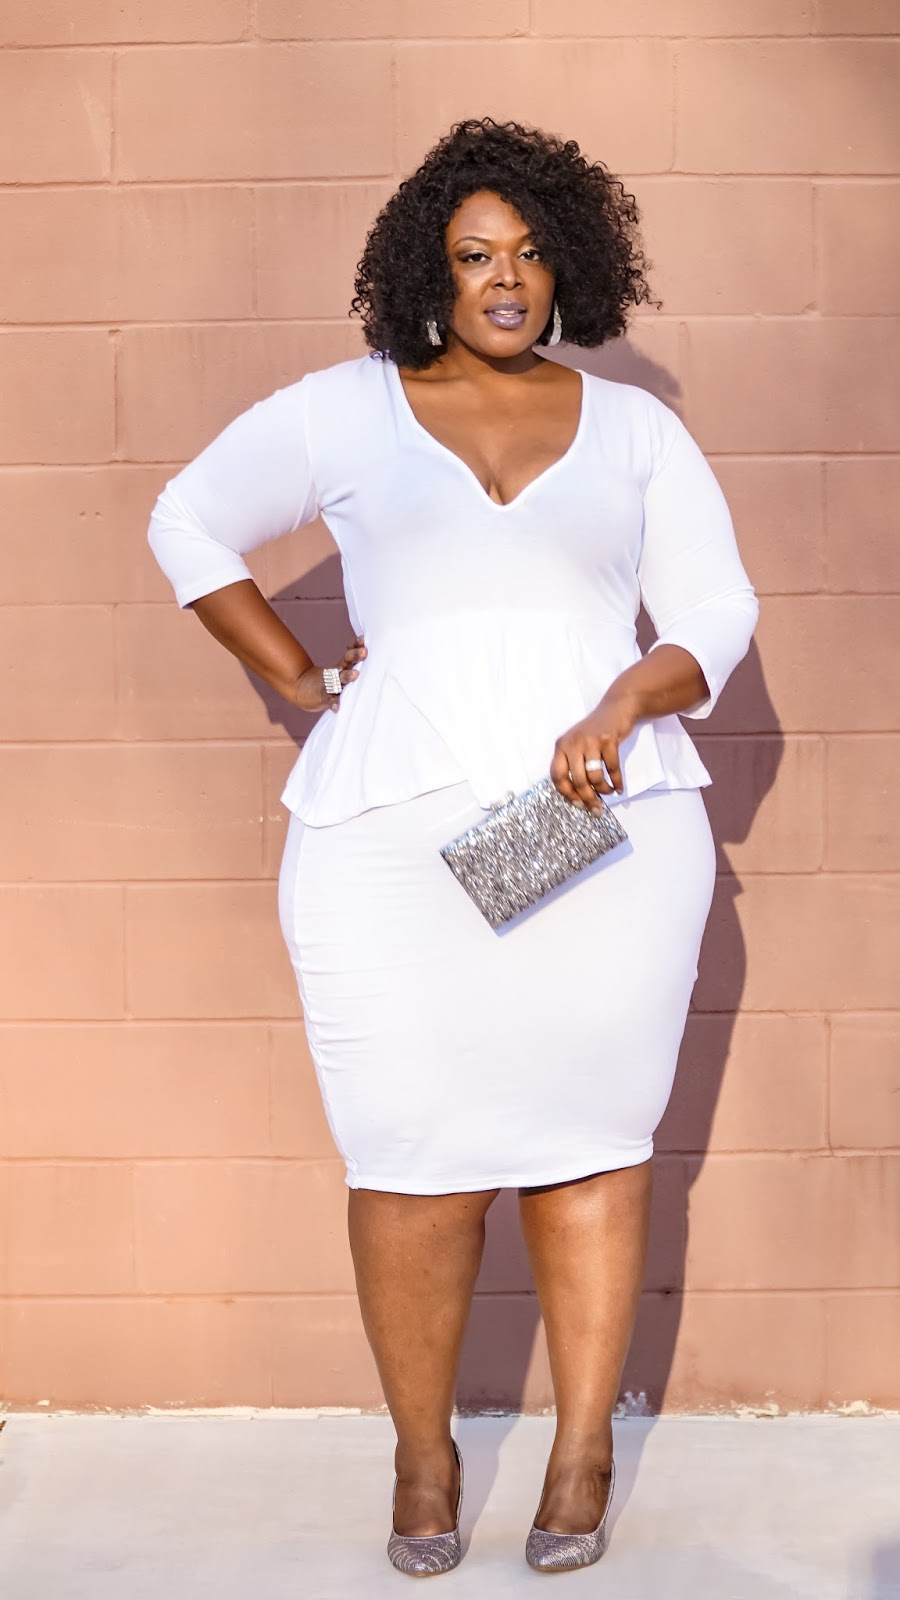 Big Bella Donna Fashion: Winter Whites with Rebdolls \